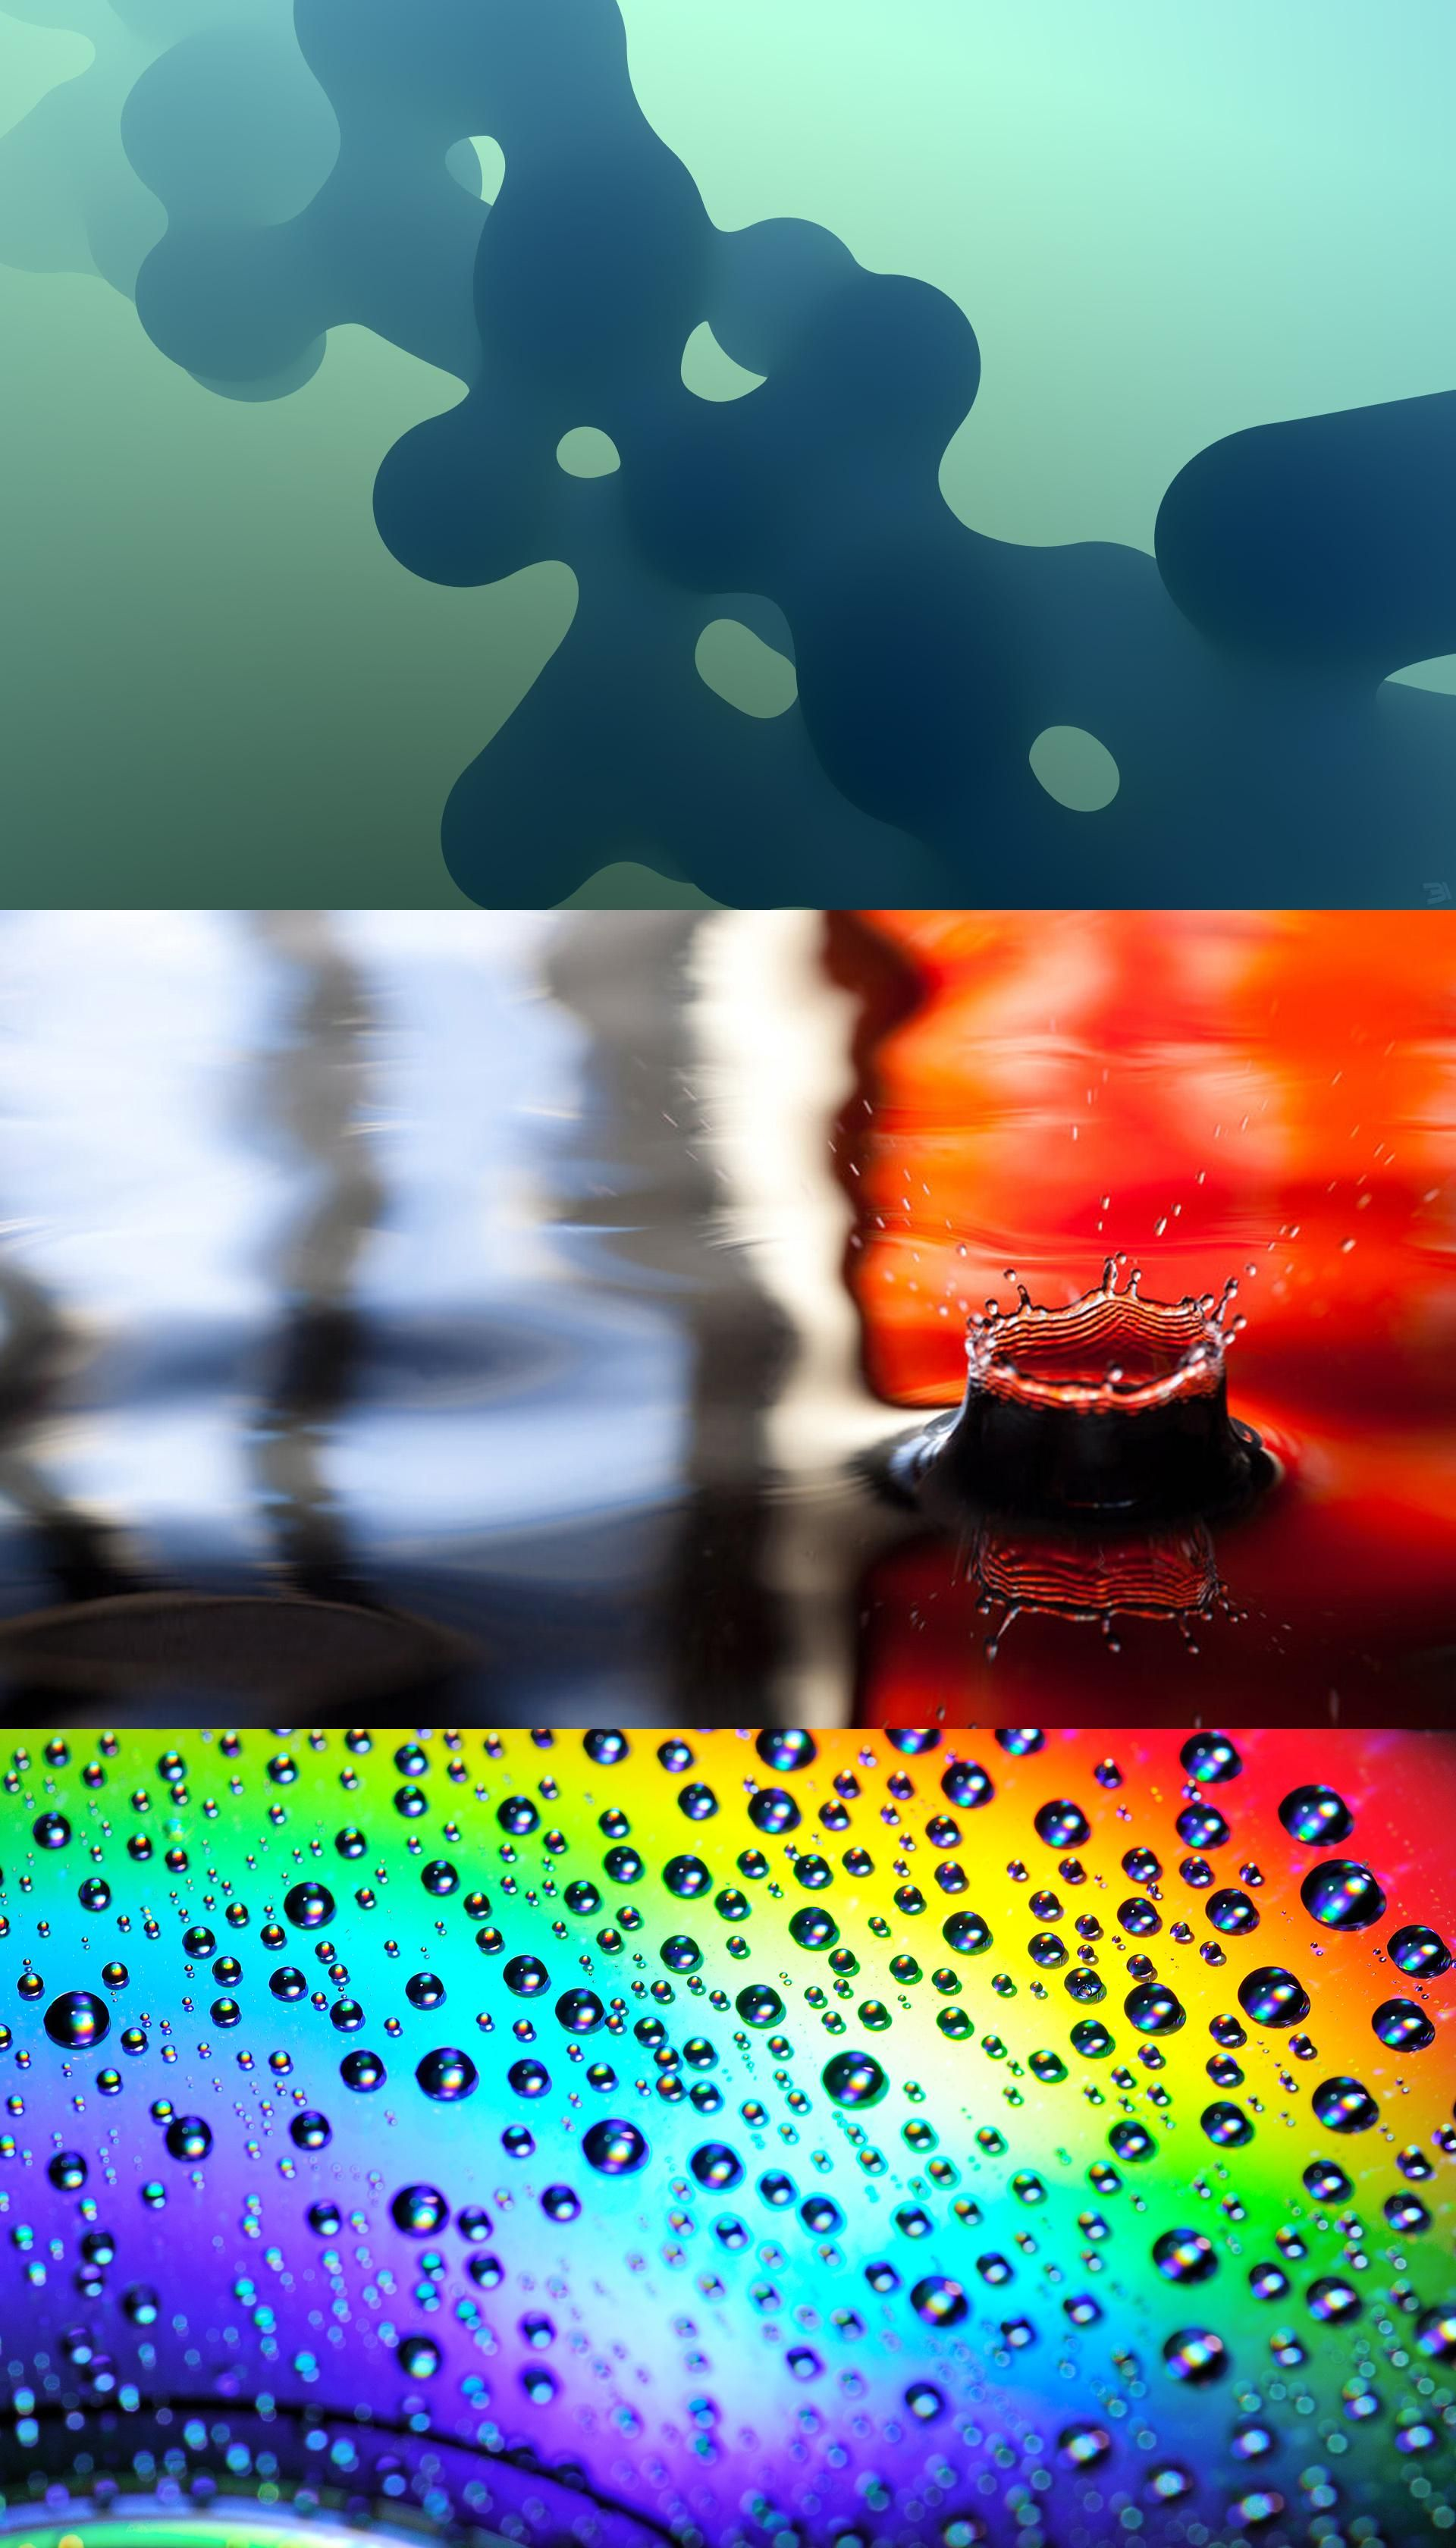 wallpaper, abstract, rainbow, drops, bright, wallpapers